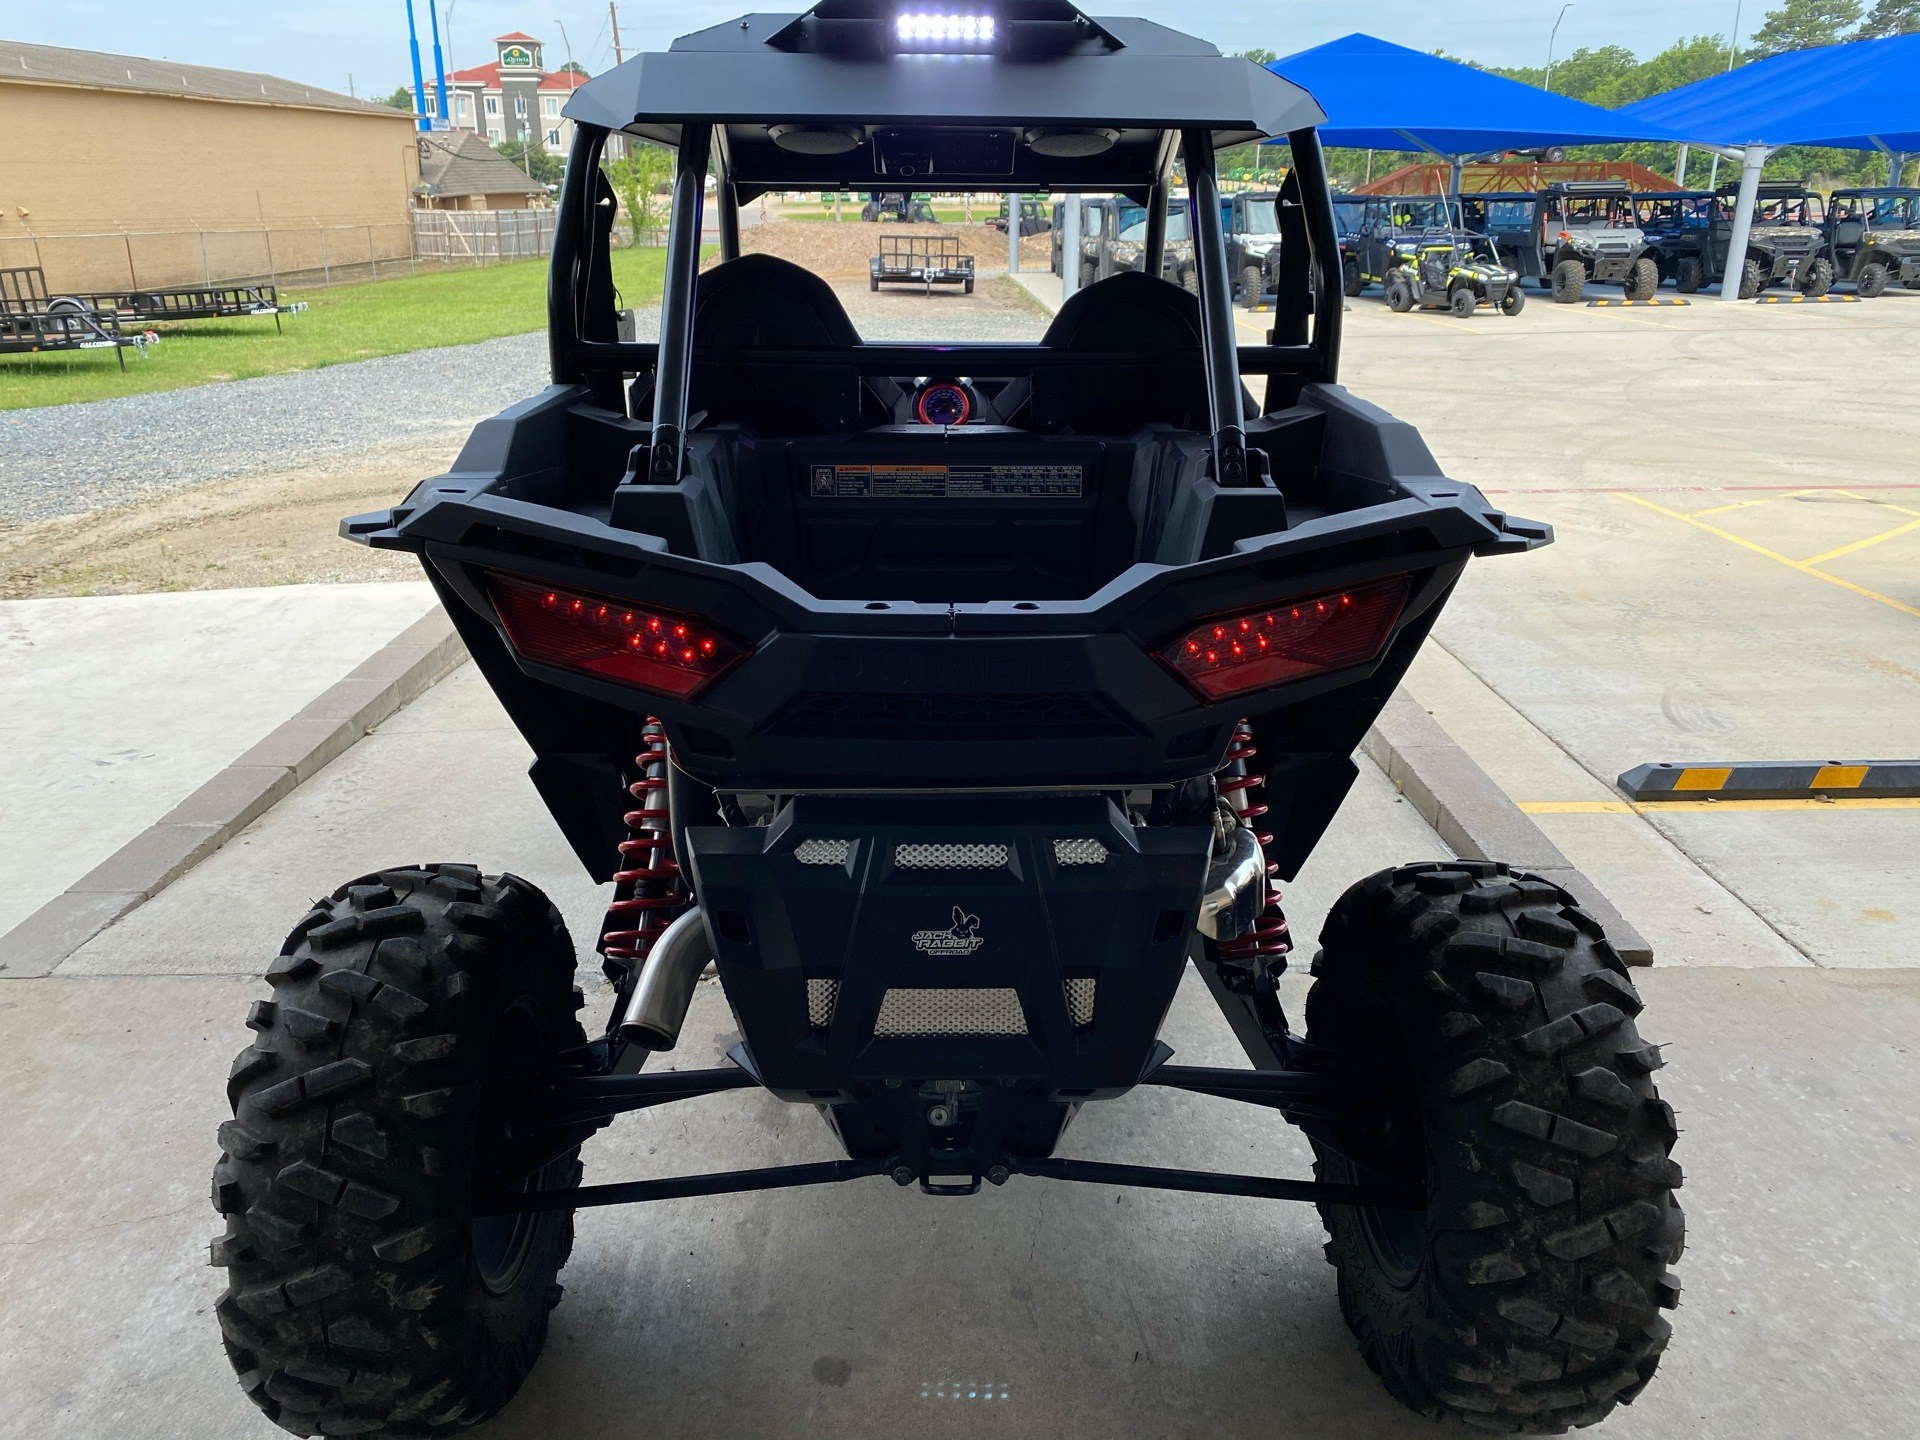 2018 Polaris RZR XP 1000 EPS in Marshall, Texas - Photo 9